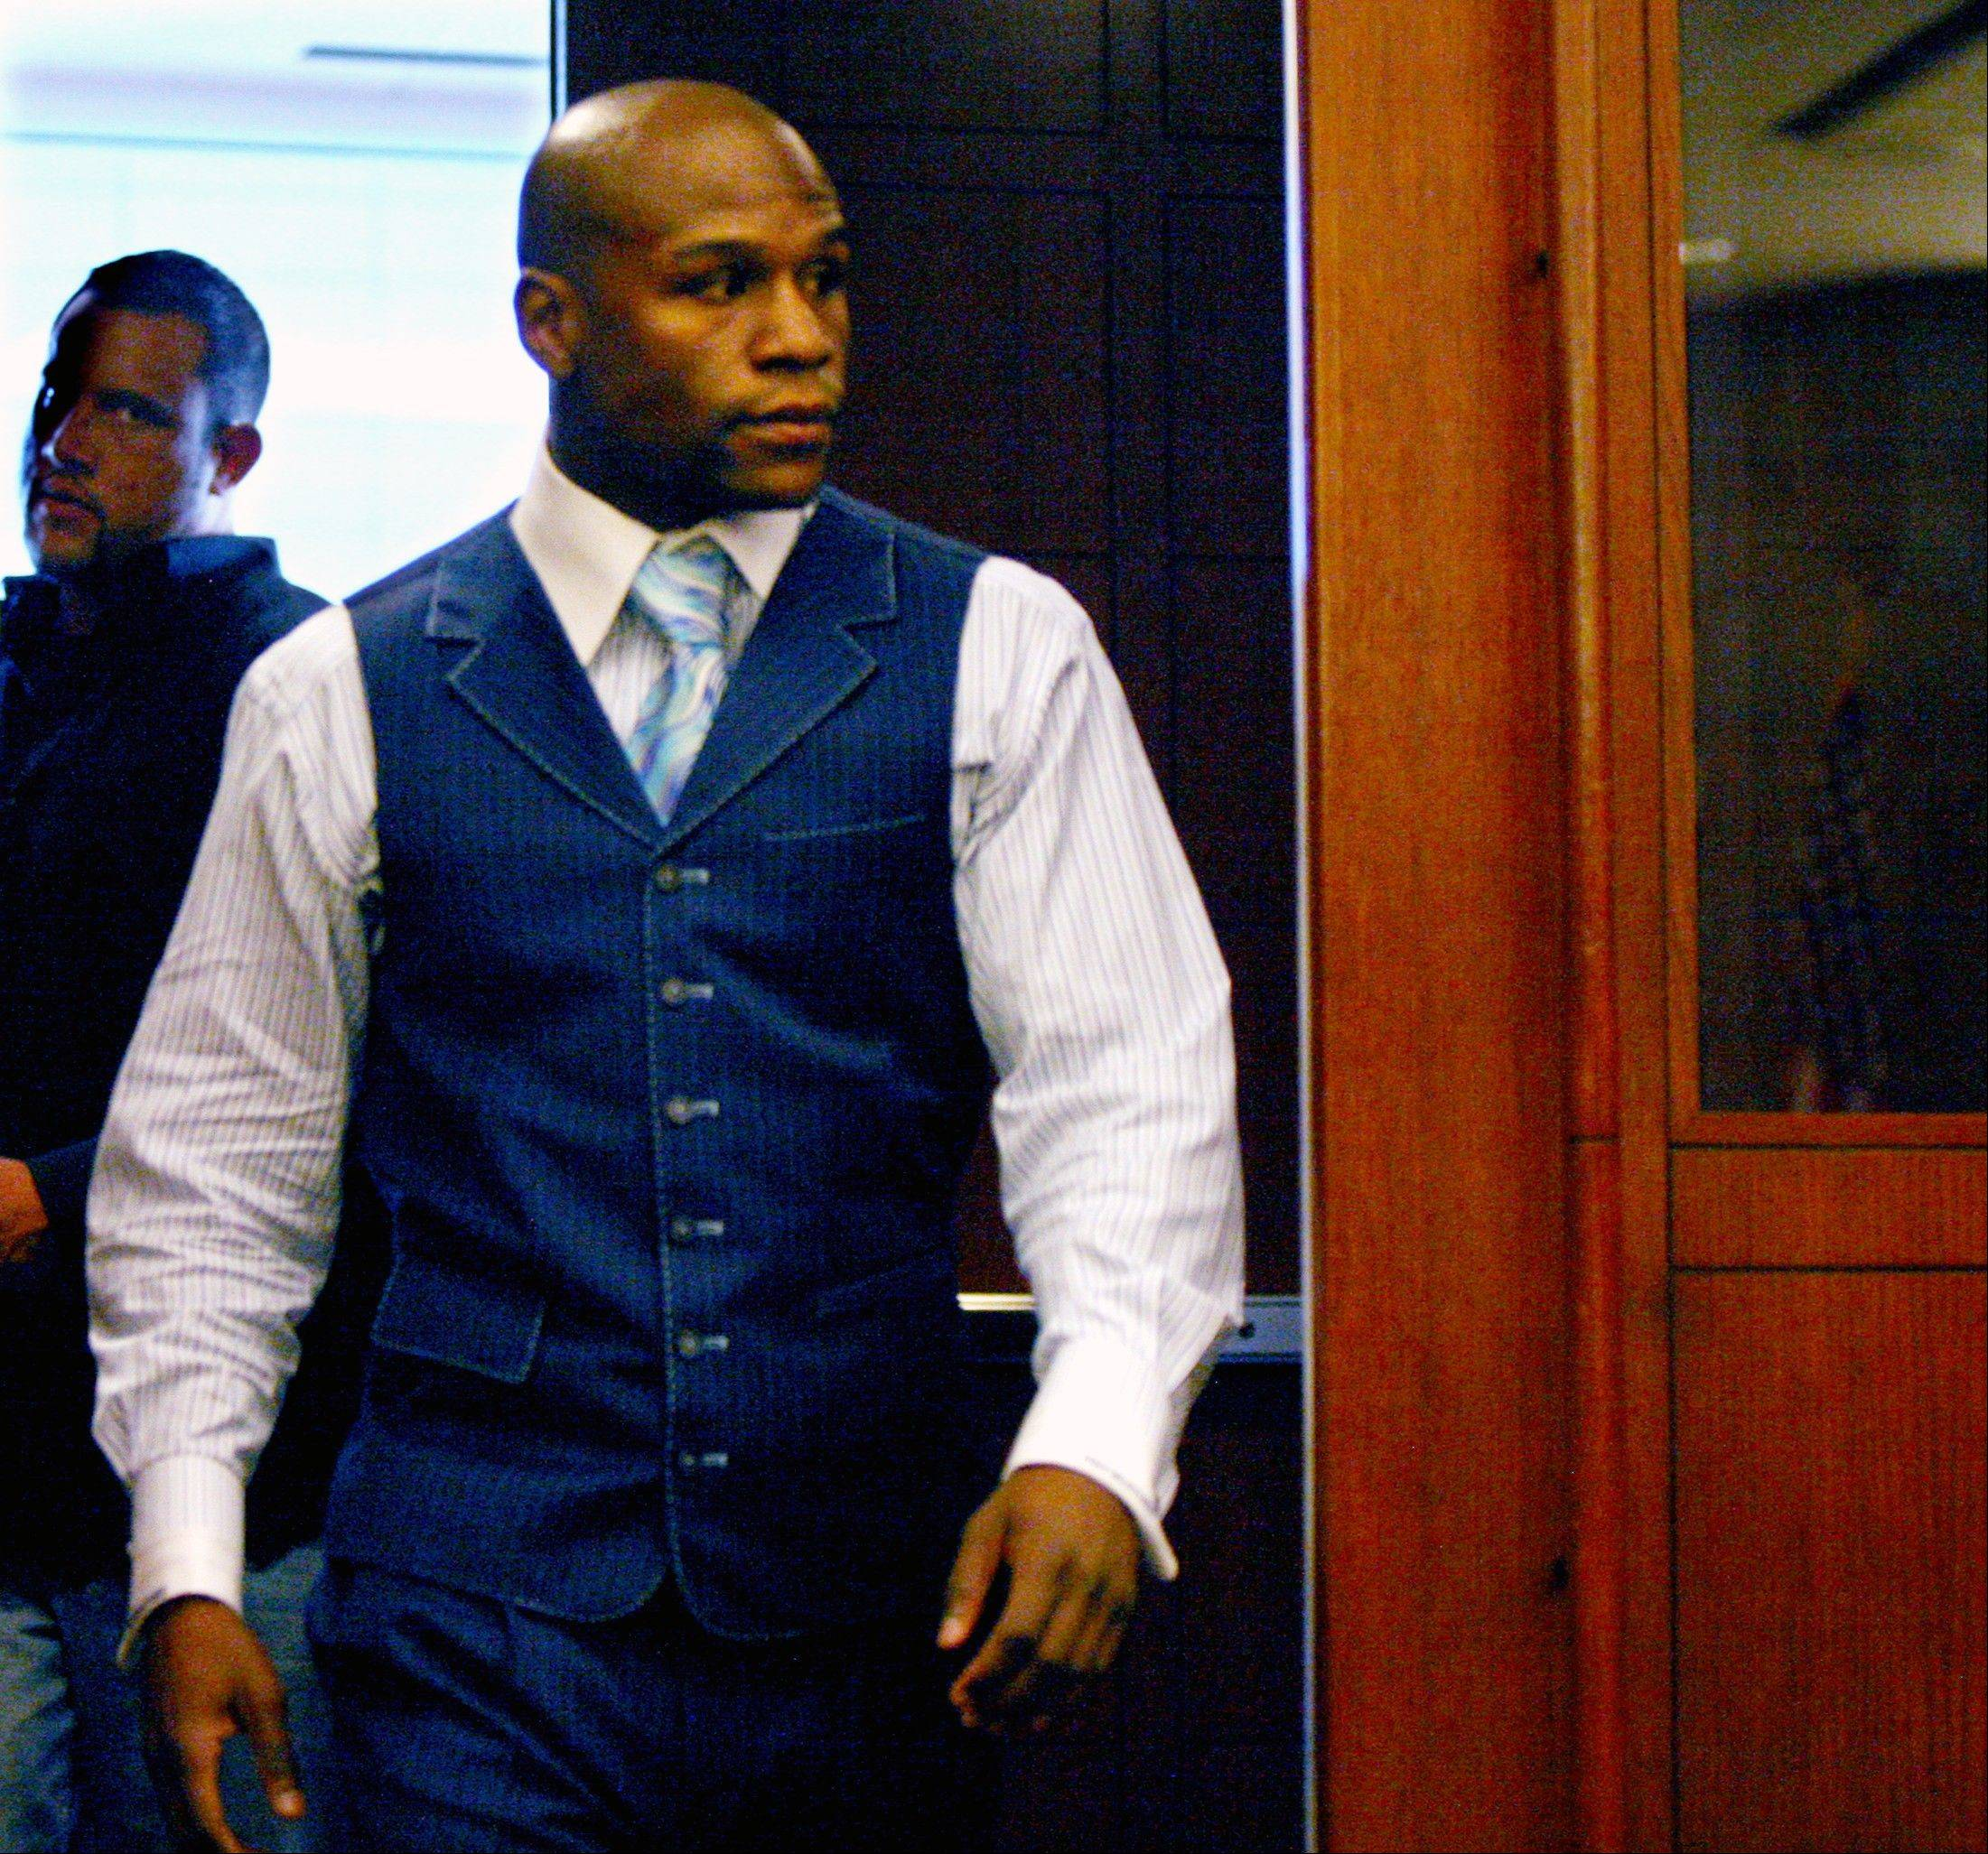 Floyd Mayweather Jr. will plead guilty in Las Vegas to reduced charges in a plea deal settling felony allegations that he battered his ex-girlfriend and a misdemeanor charge that he poked a security guard. An aide to Clark County District Attorney David Roger confirmed the 34-year-old boxer will enter his pleas Wednesday Dec. 21, 2011 in Las Vegas Justice Court.